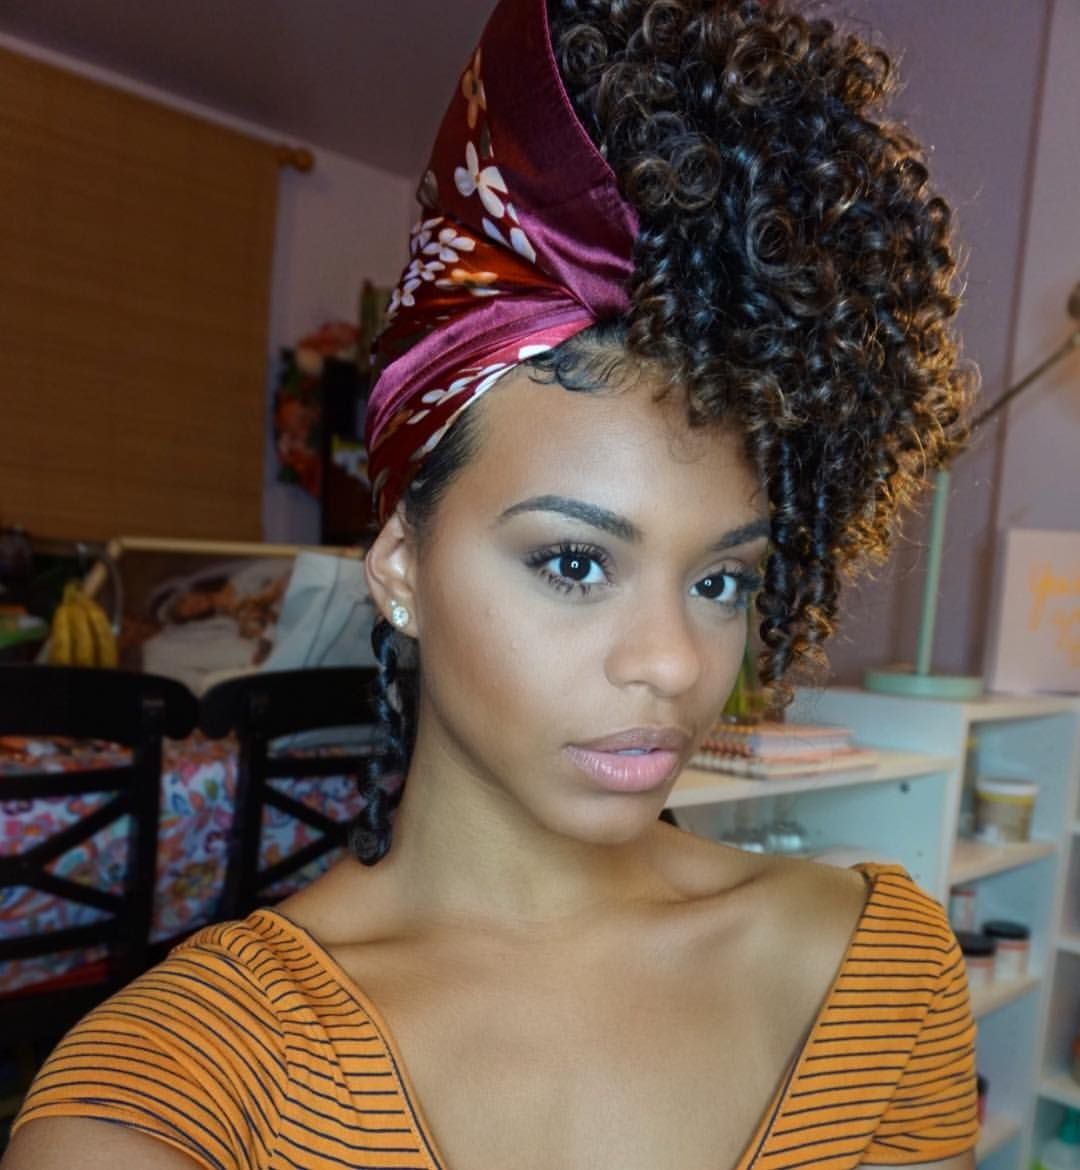 4 598 Likes 48 Comments Chelliscurls Curly Styles Chelliscurls On Instagram This Is How I Sle Natural Hair Spray Natural Hair Styles Sleep Hairstyles